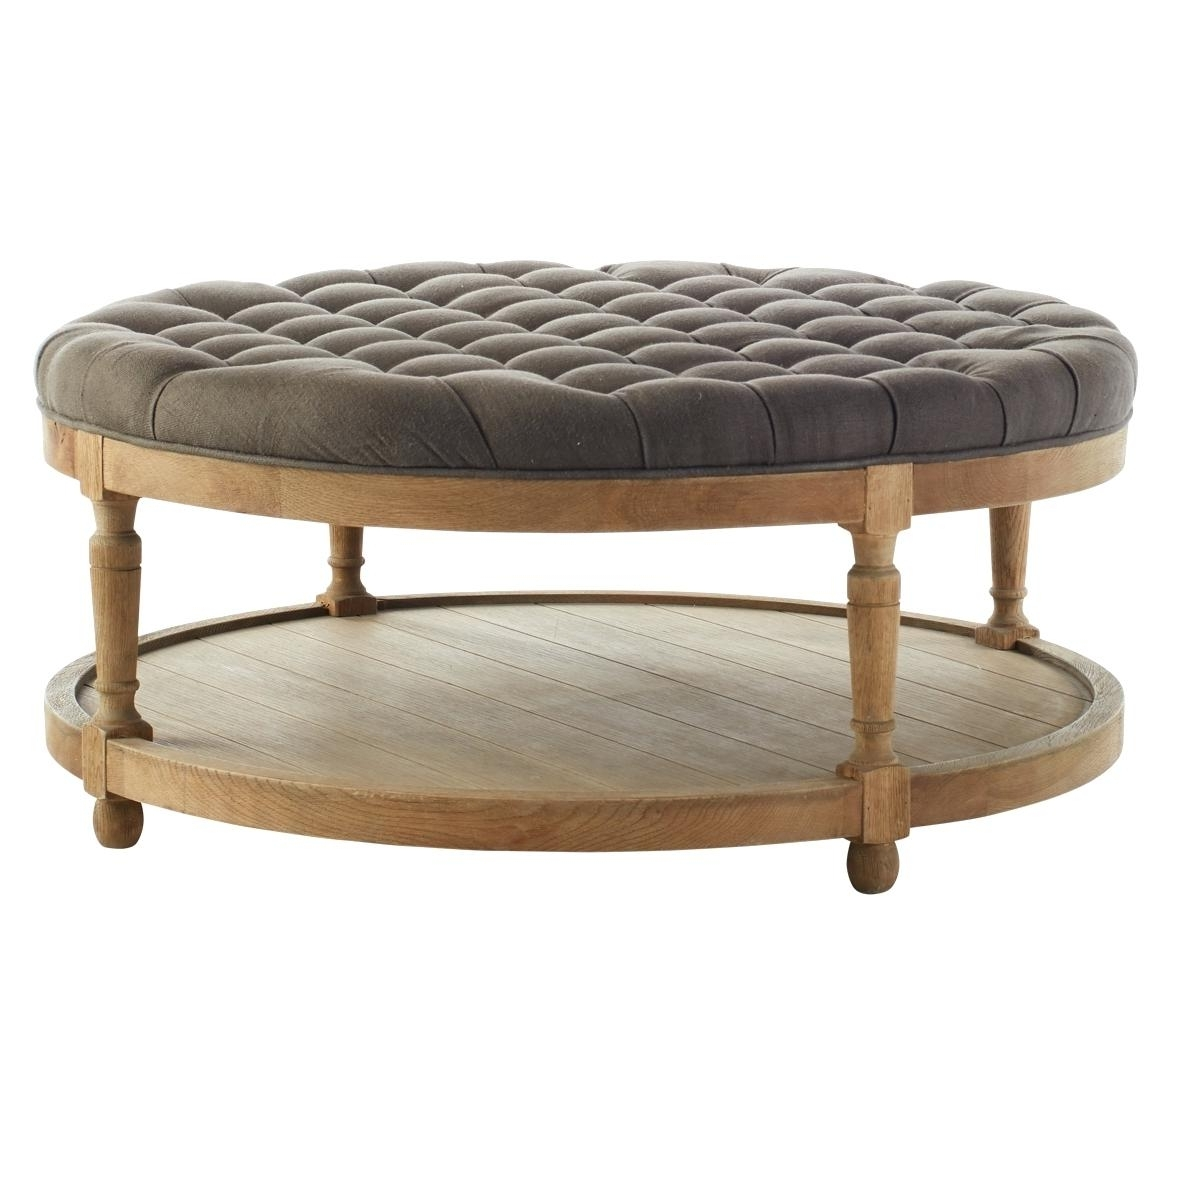 Tufted Coffee Table Wisteria Round Button Essex Ottoman With Tray For Favorite Round Button Tufted Coffee Tables (View 15 of 20)